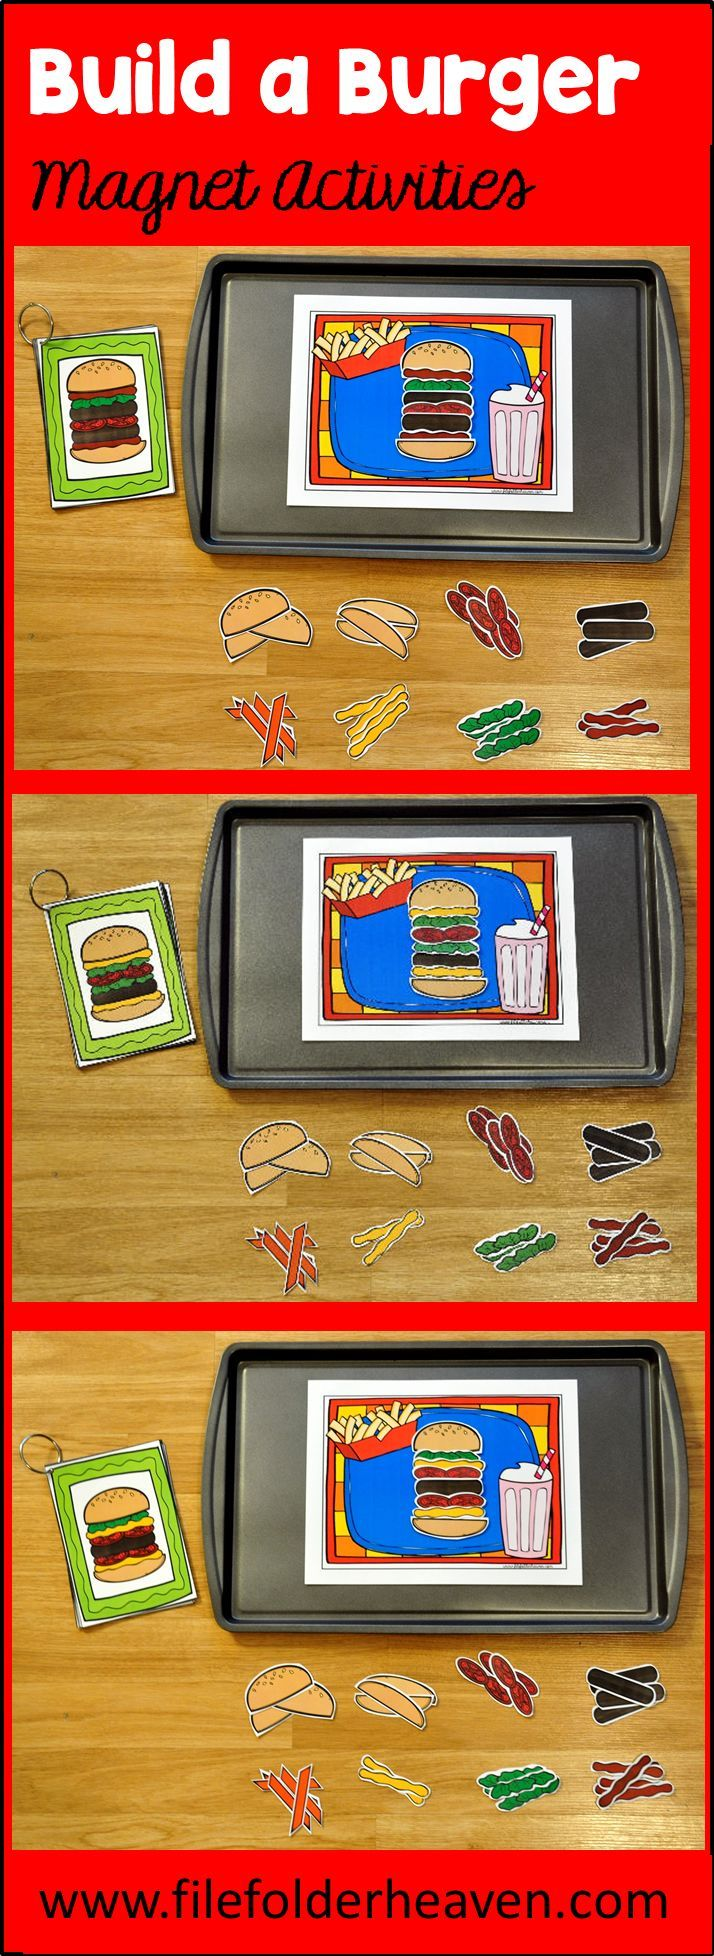 """These Build a Burger Center Activities can be set up as cookie sheet activities, a magnet center or completed as cut and glue activities. This activity includes: 1 background, 12 build a burger example cards, and a big set of """"build a burger"""" building pieces for creative building (all in color).  In this activity, students work on visual discrimination skills, recognizing same and different, and replicating a model."""